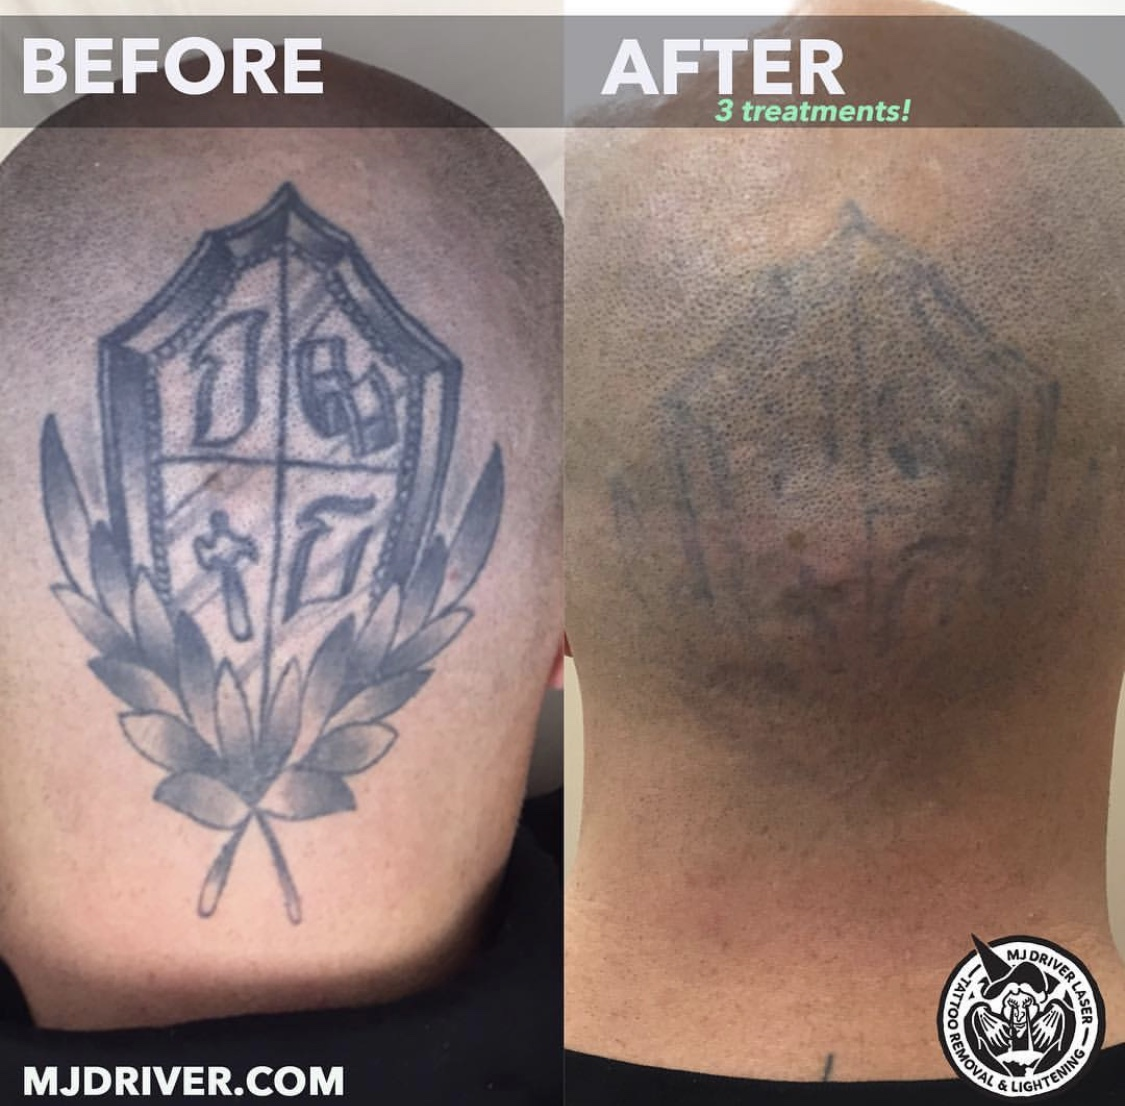 Before and After MJ Driver Laser Tattoo Removal